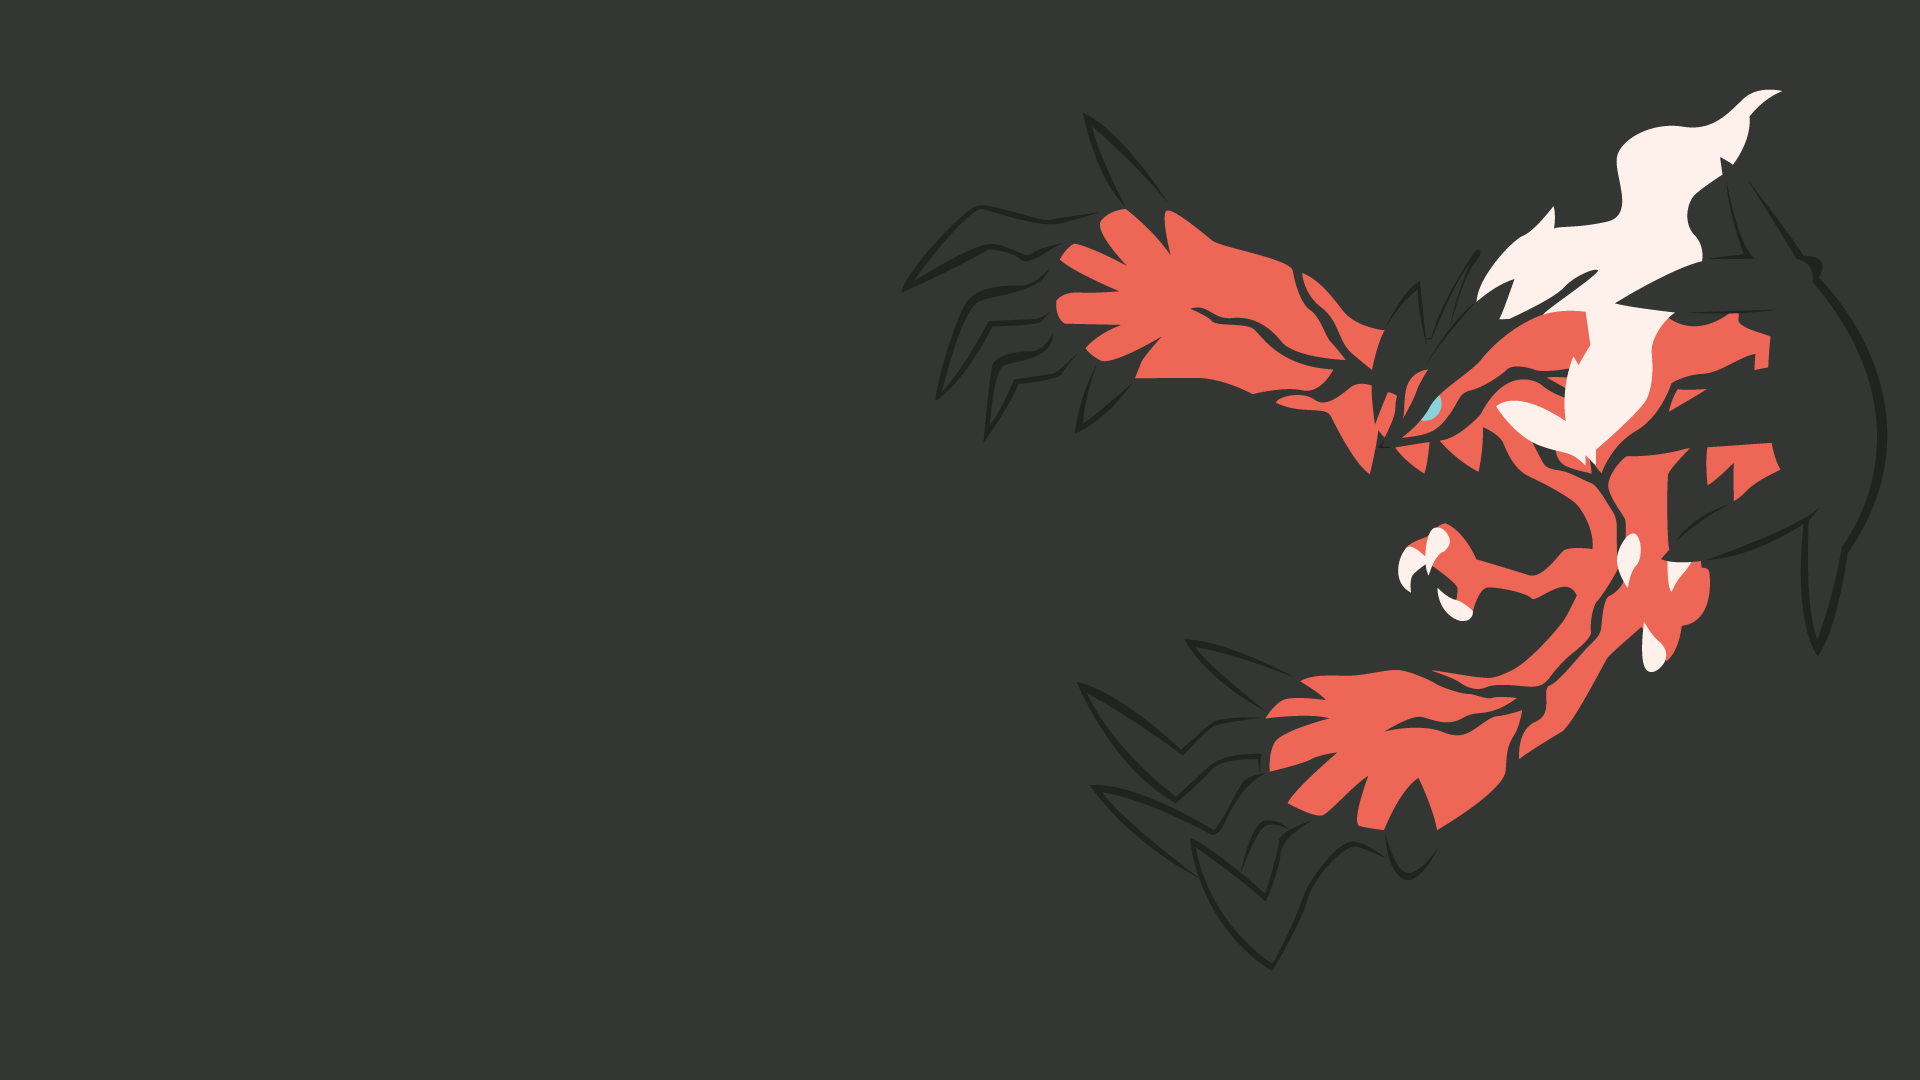 10 Amazing Pokemon X and Y Wallpapers Leviathyn 1920x1080